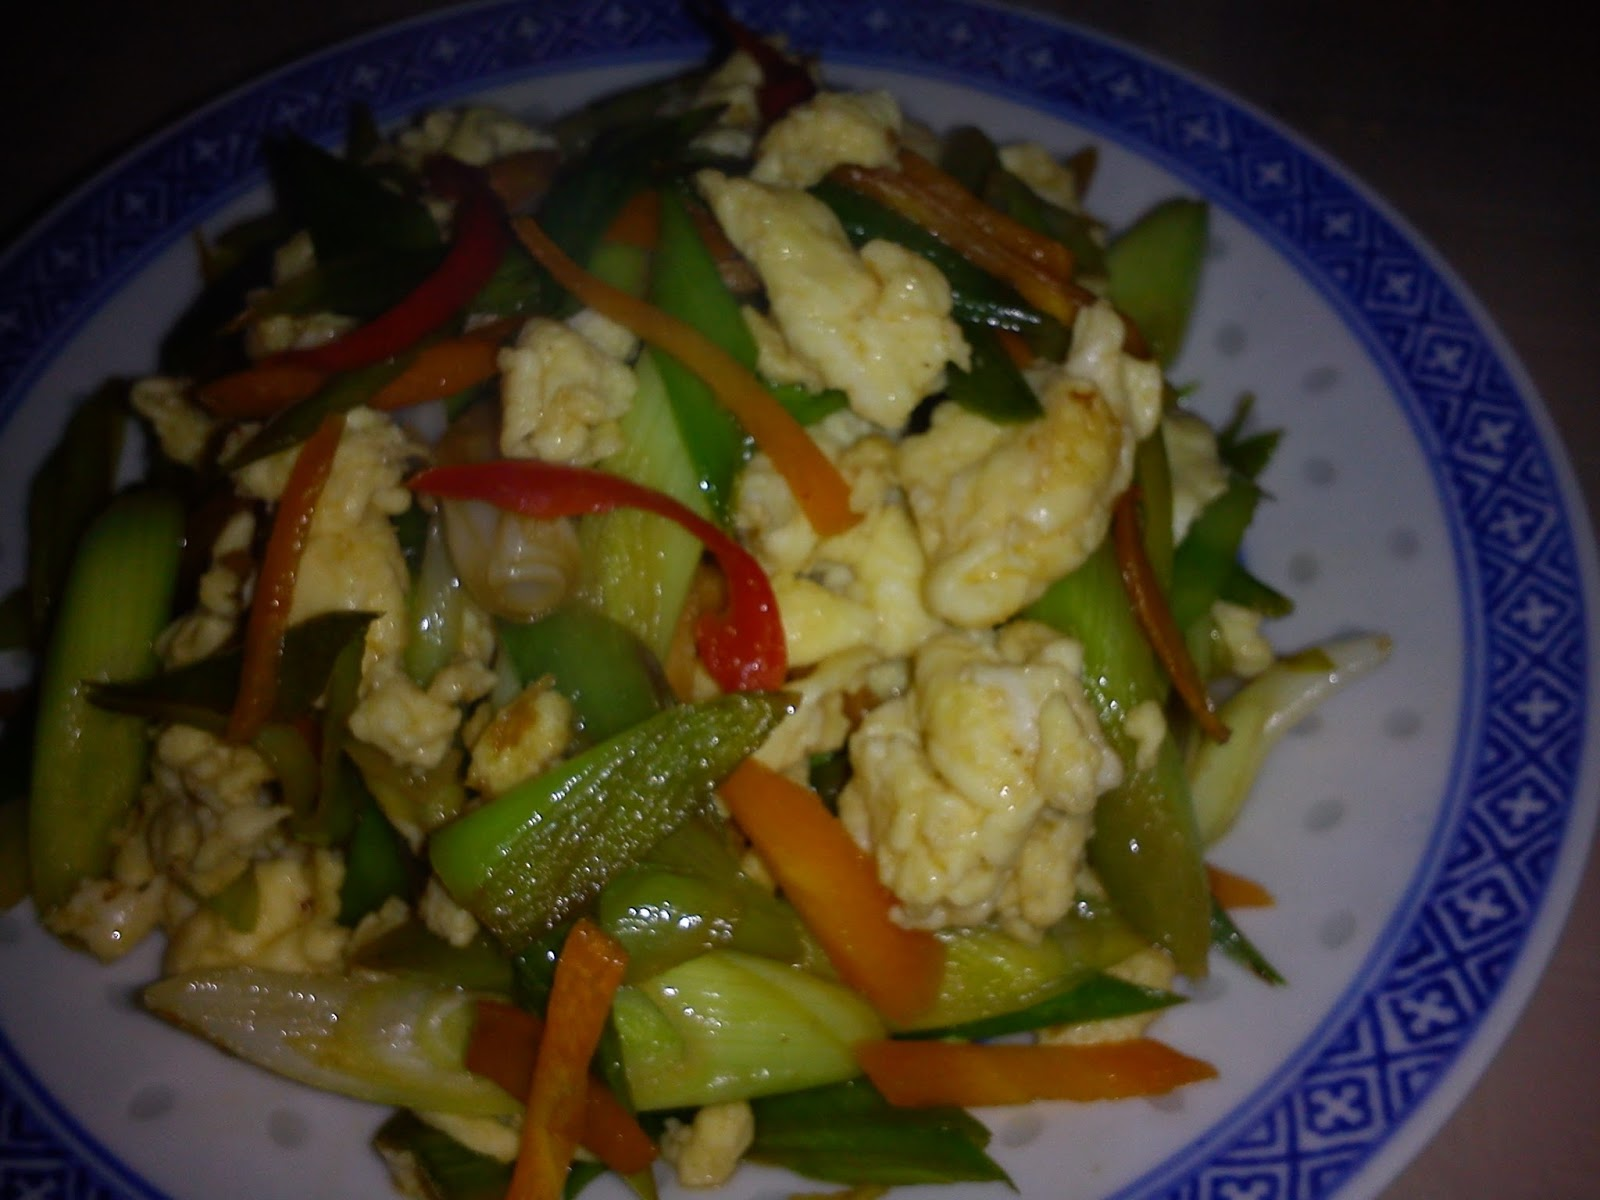 Cooking Pleasure: EZCR#25 - STIR FRIED LEEKS WITH SCRAMBLED EGGS